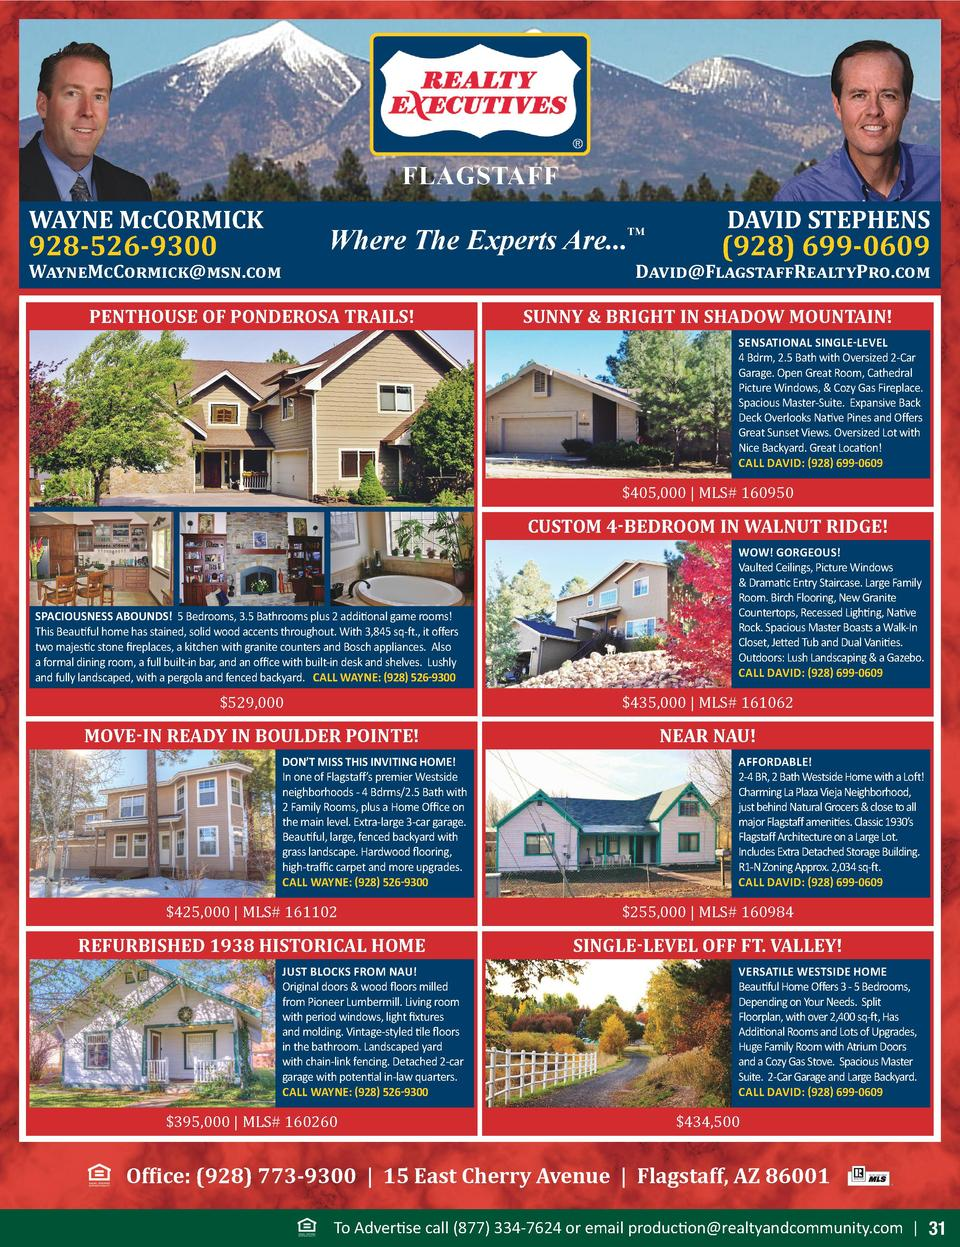 FLAGSTAFF WAYNE McCORMICK  Where The Experts Are...       928-526-9300  WayneMcCormick msn.com  DAVID STEPHENS   928  699-...